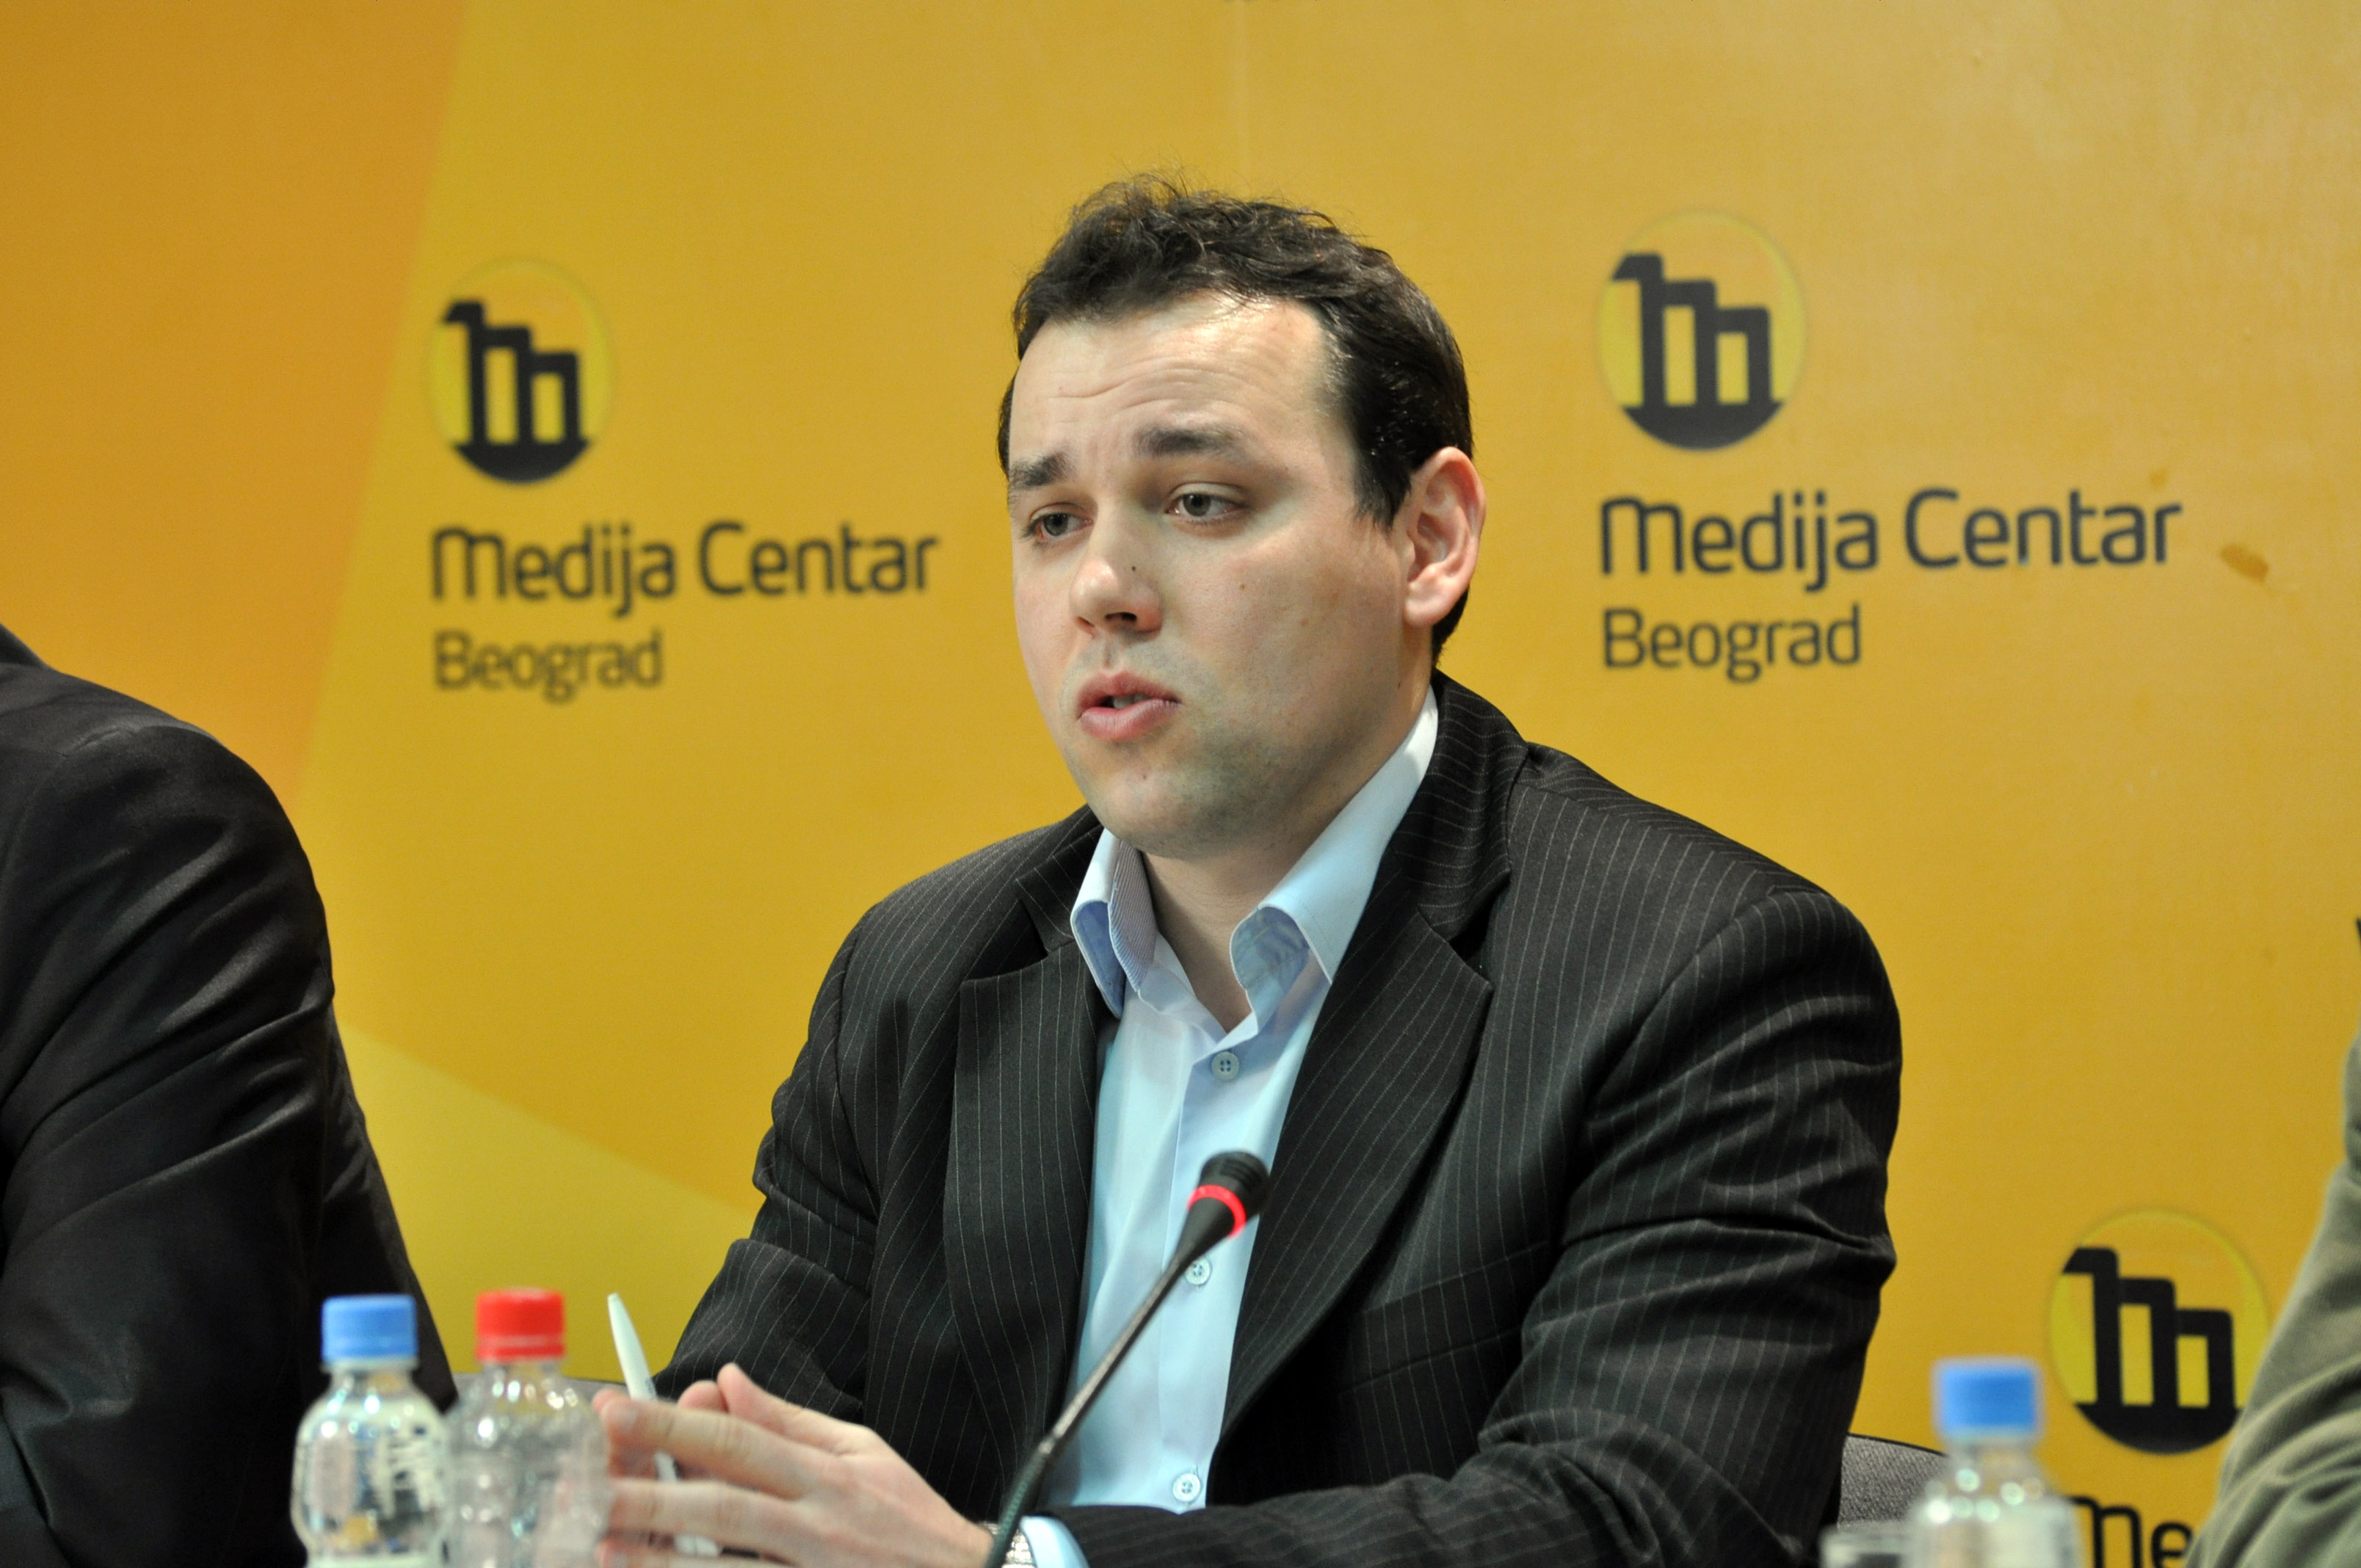 IBNA / Interview: Not many Serbian politicians know what EU really is